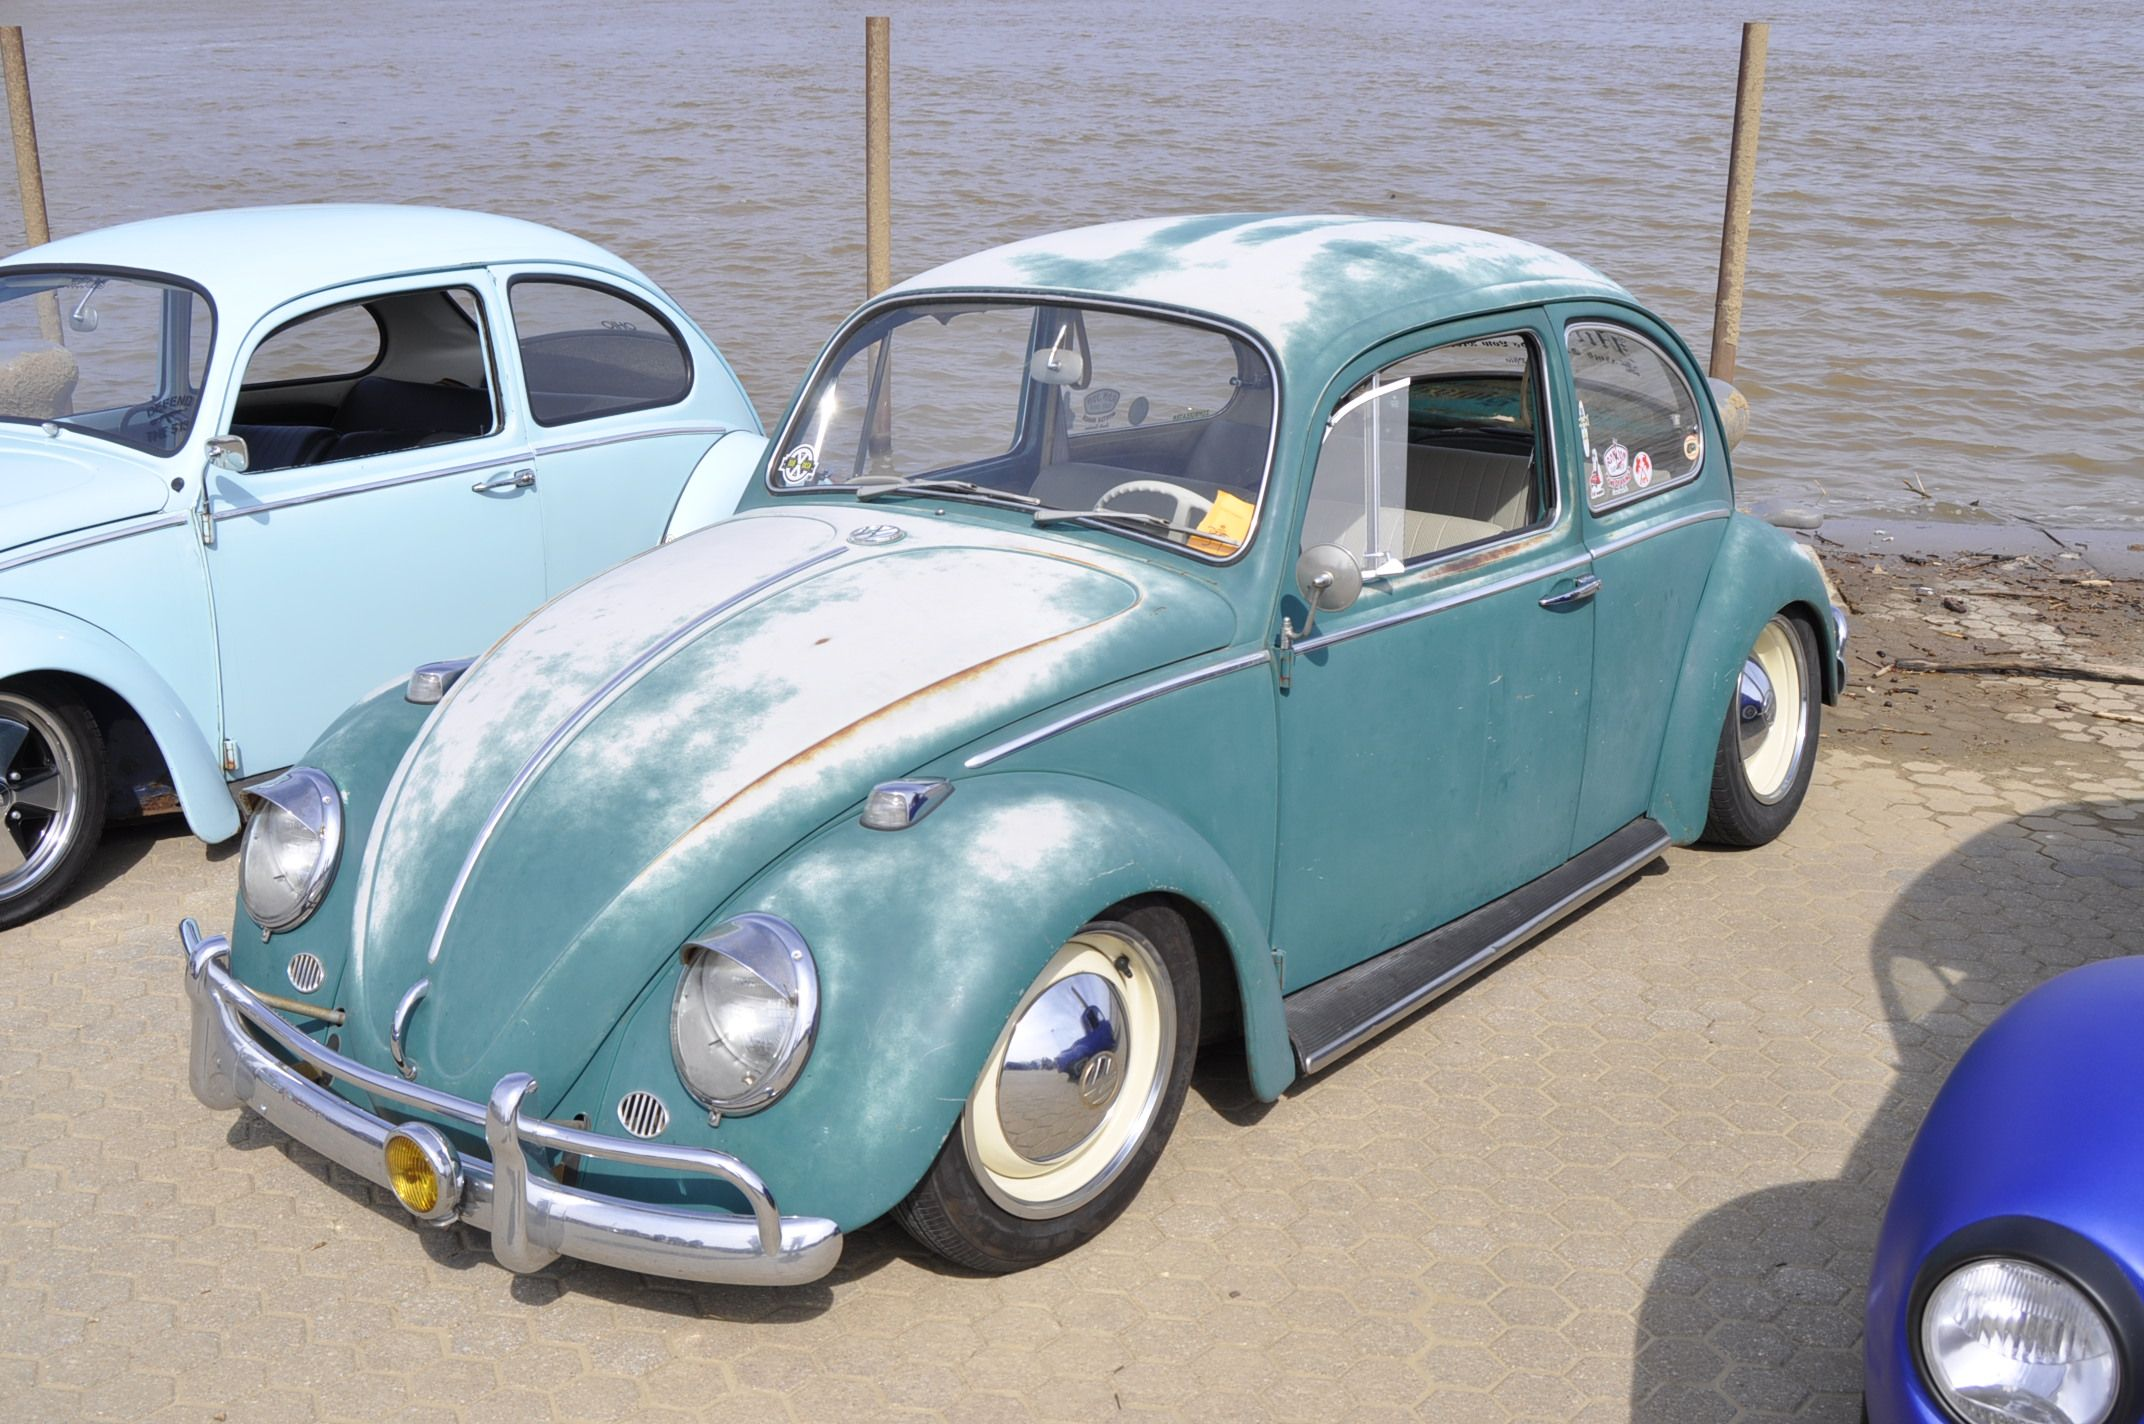 firm man over volkswagen sue law vw science sues cheating tech louisville story environment